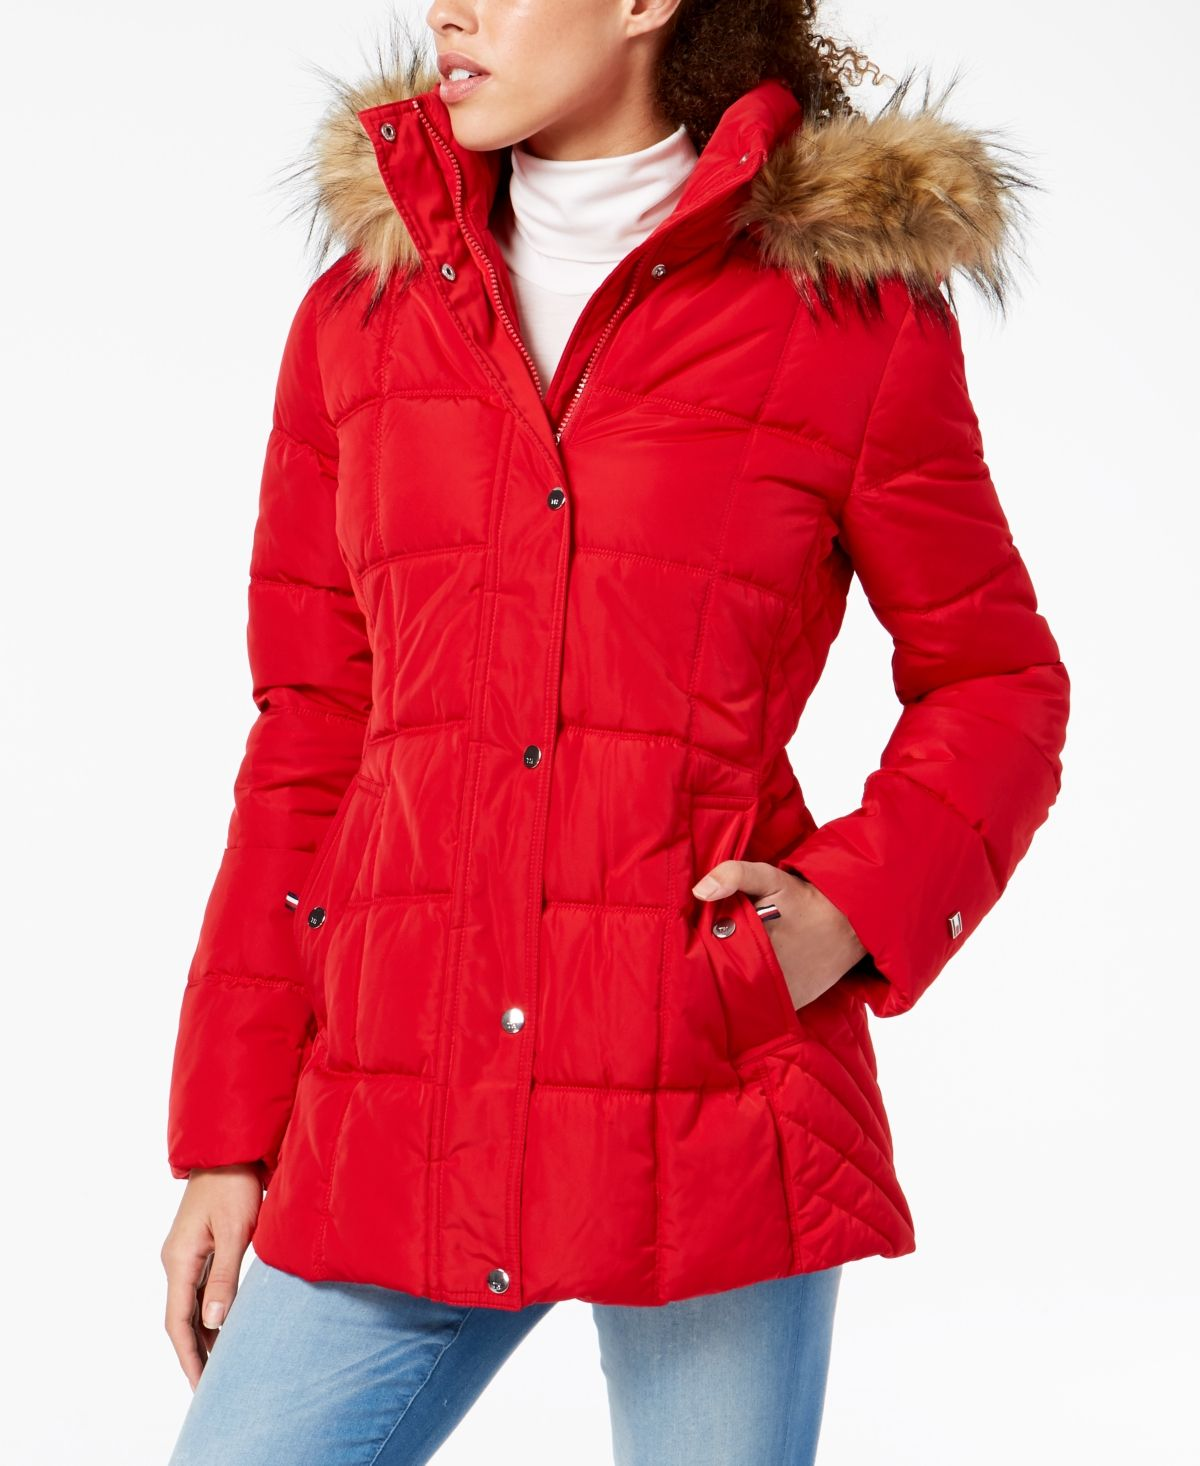 Tommy Hilfiger Hooded Faux Fur Trim Puffer Coat Created For Macy S Reviews Coats Women Macy S Hooded Faux Puffer Coat Coats For Women [ 1466 x 1200 Pixel ]